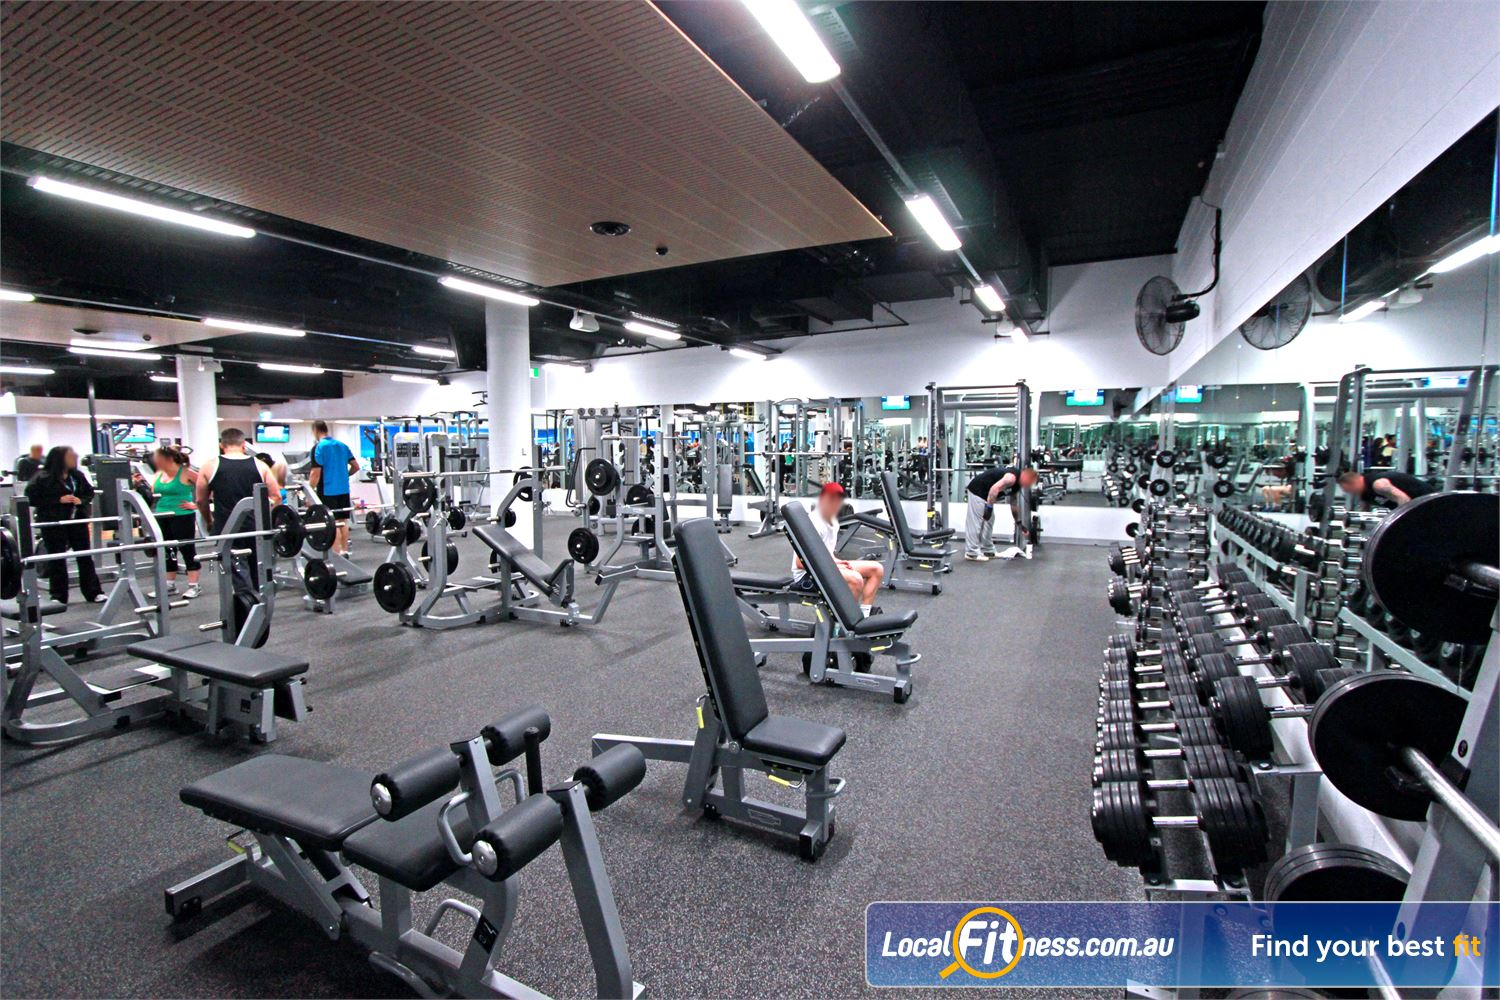 WaterMarc Aquatic & Leisure Centre Near Montmorency Benches, bars, dumbbells, barbells and more.